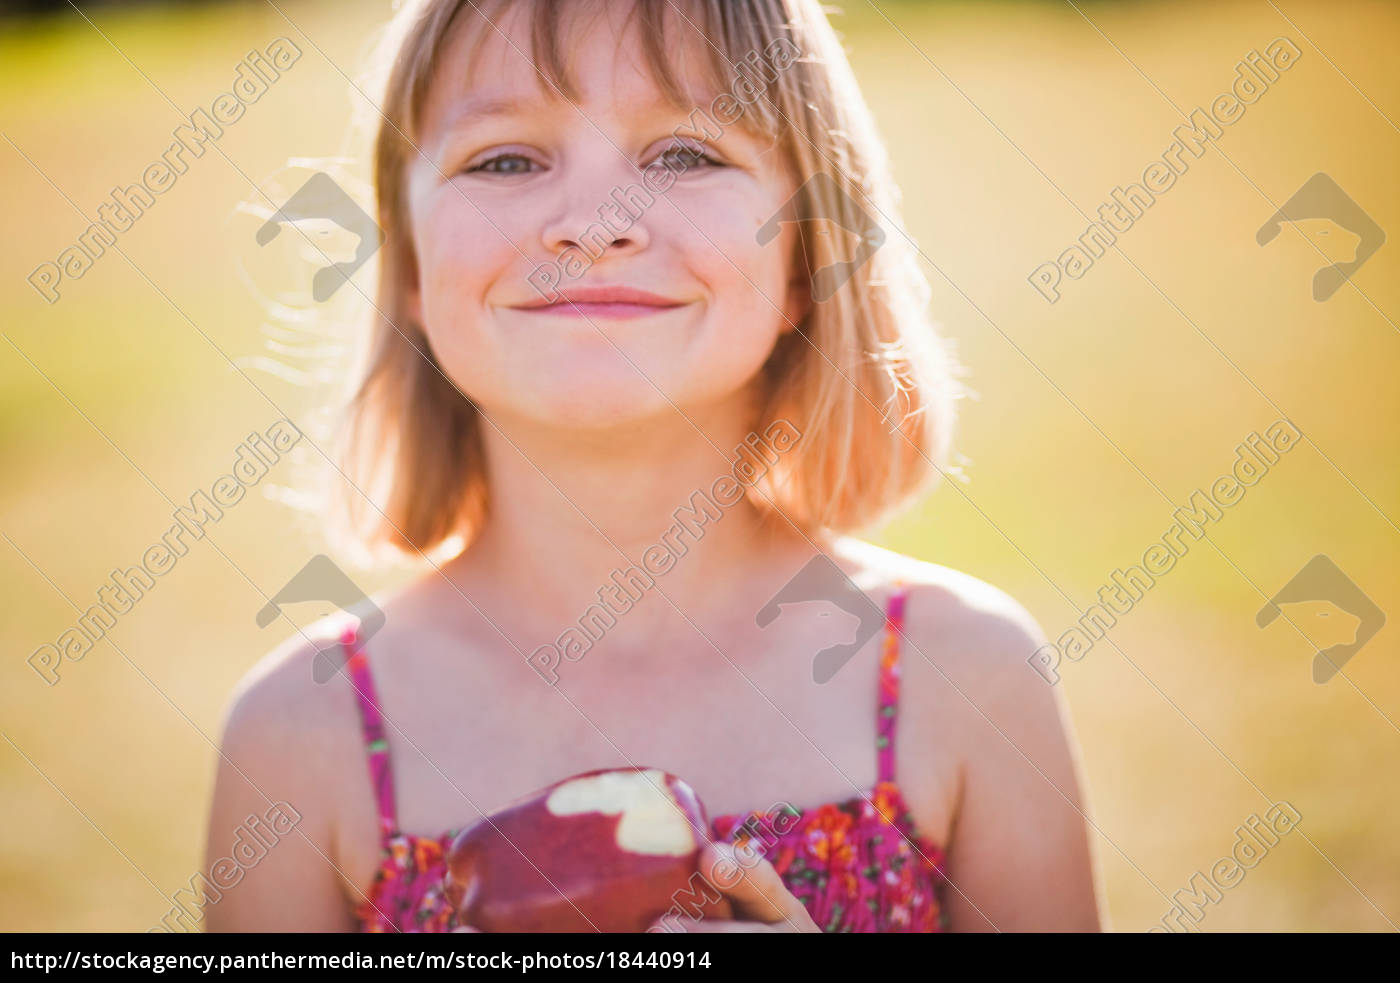 young, girl, with, apple, smiling - 18440914